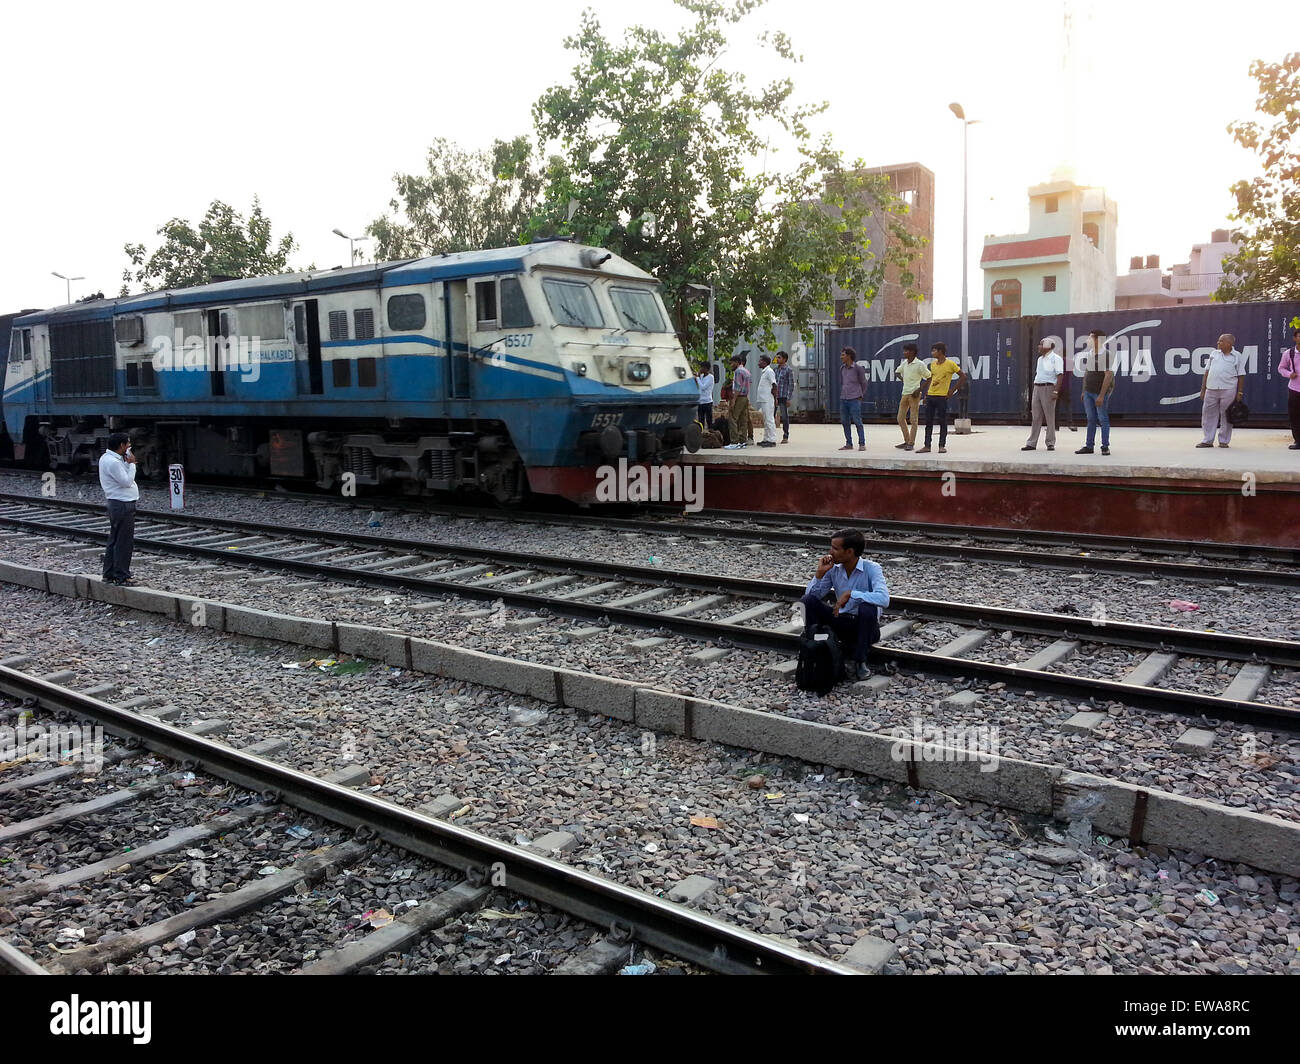 Gurgaon, India; 19th Jun'15: People waiting on the tracks as a train arrives at the Gurgaon station. Unsafe practices Stock Photo